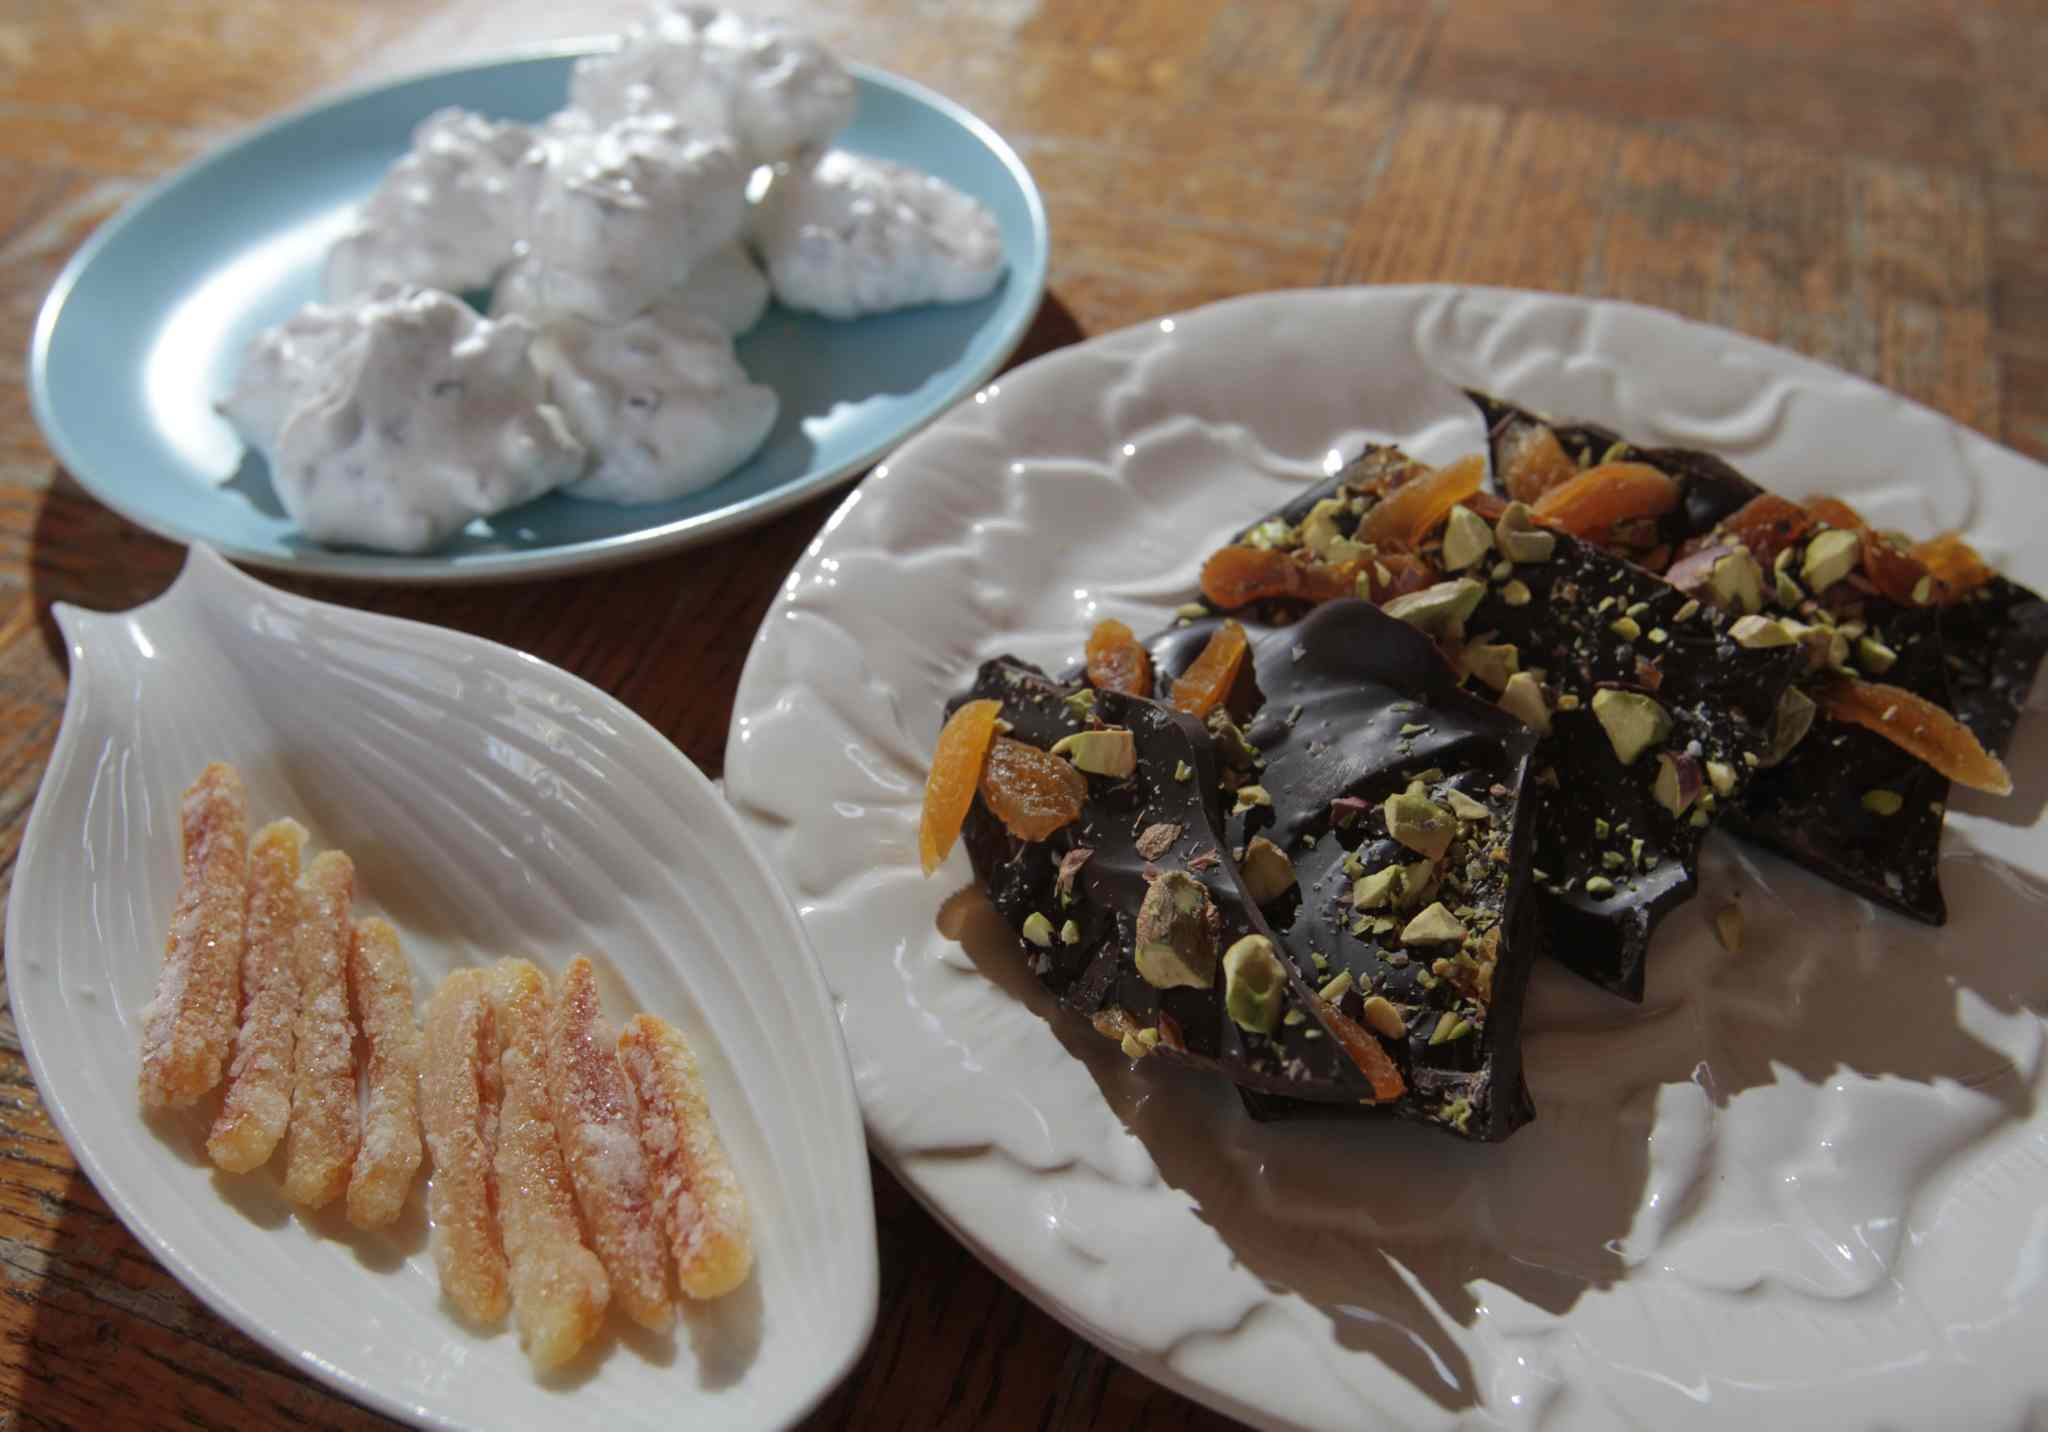 Dark Chocolate Bark (on white plate),  Forgotten Kisses (on blue plate) and Candied Orange Peel (on leaf shaped dish.)